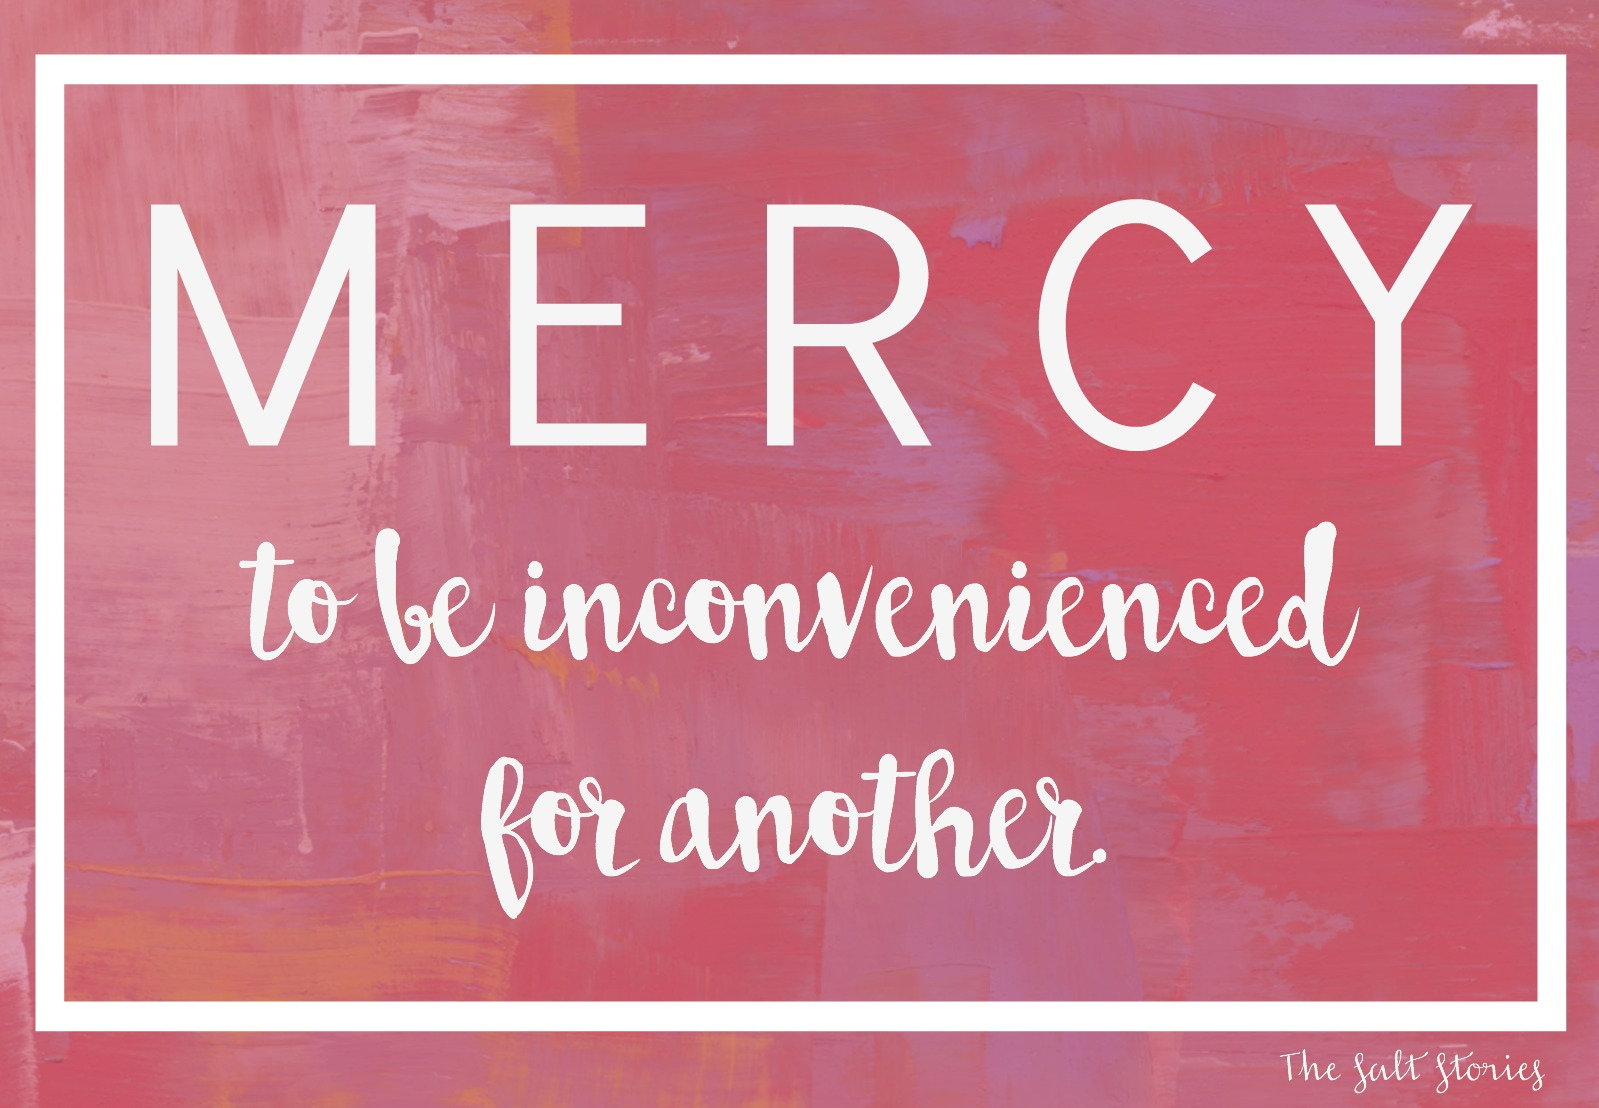 The Salt Stories: Mercy and Inconvenience